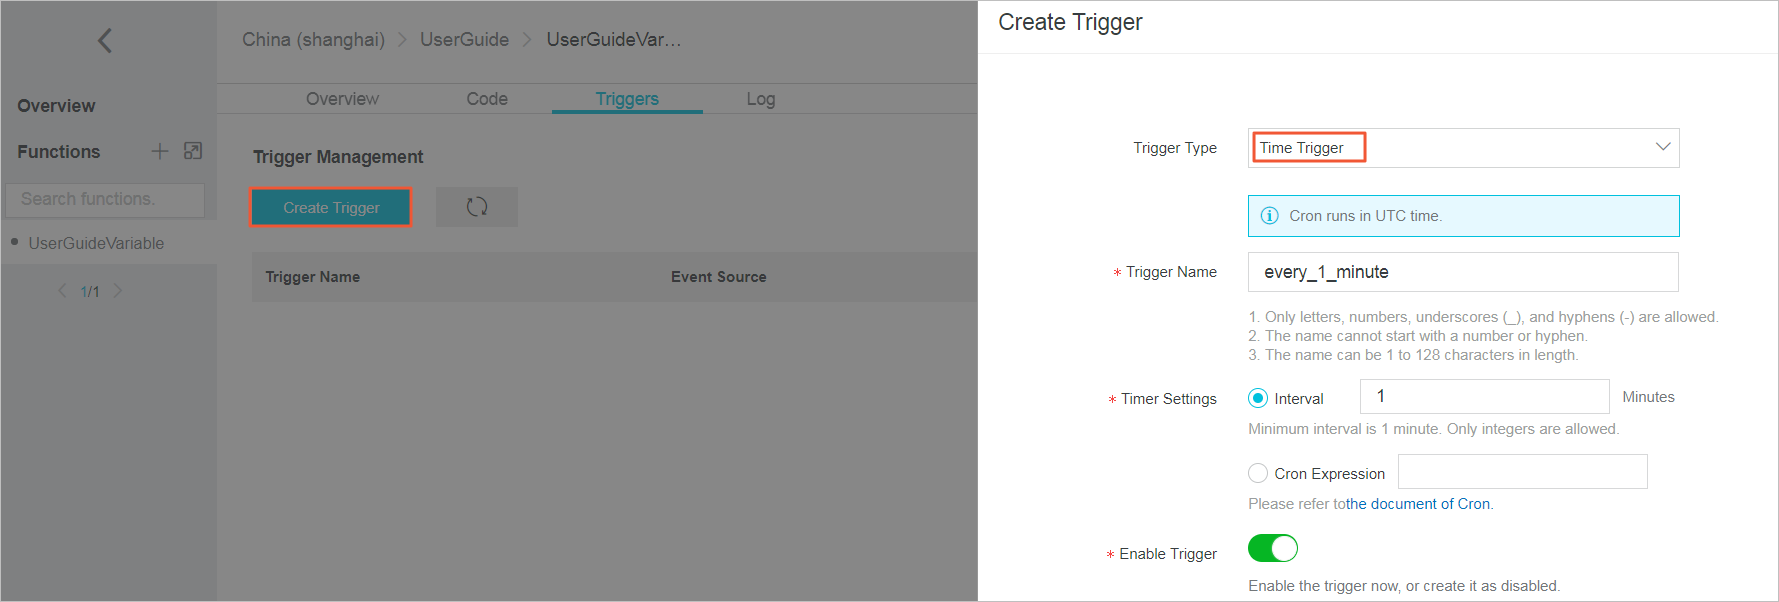 Create a timer trigger for an existing function